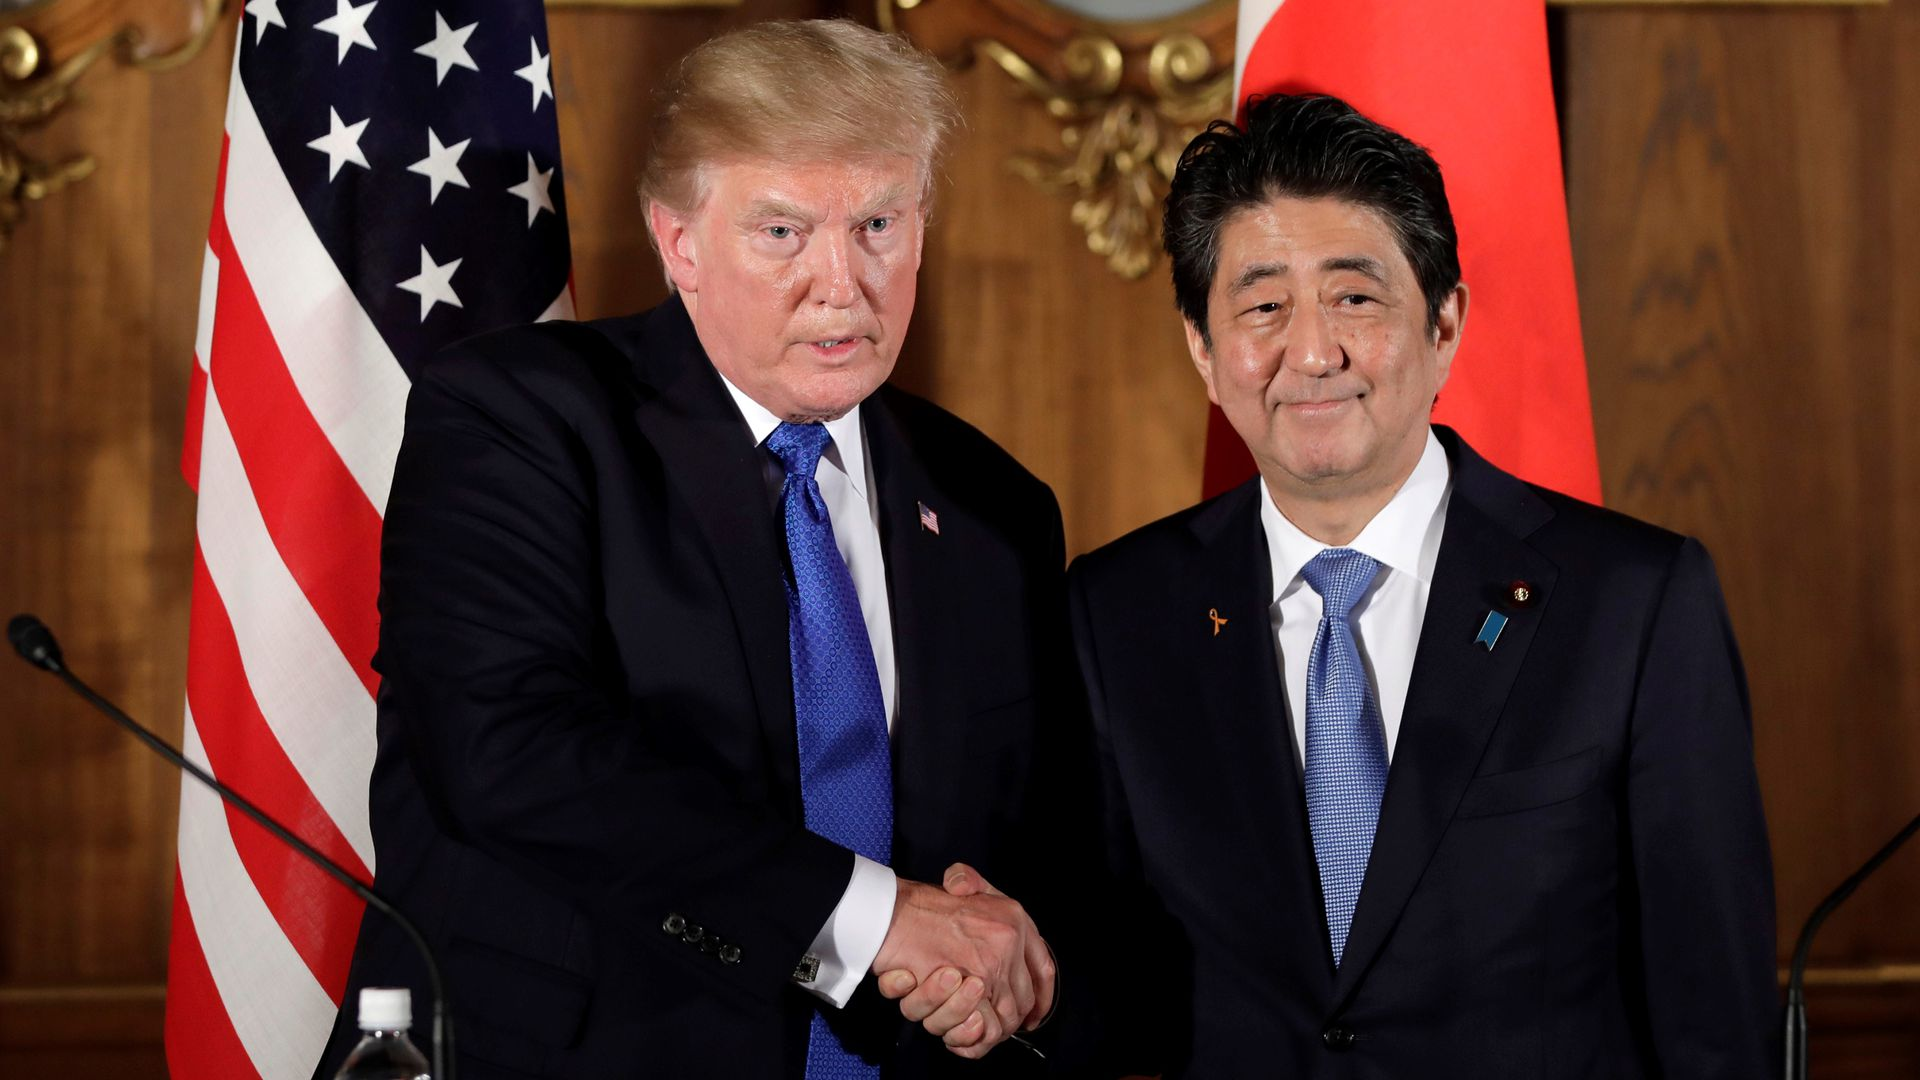 President Trump and Japanese Prime Minister Abe.